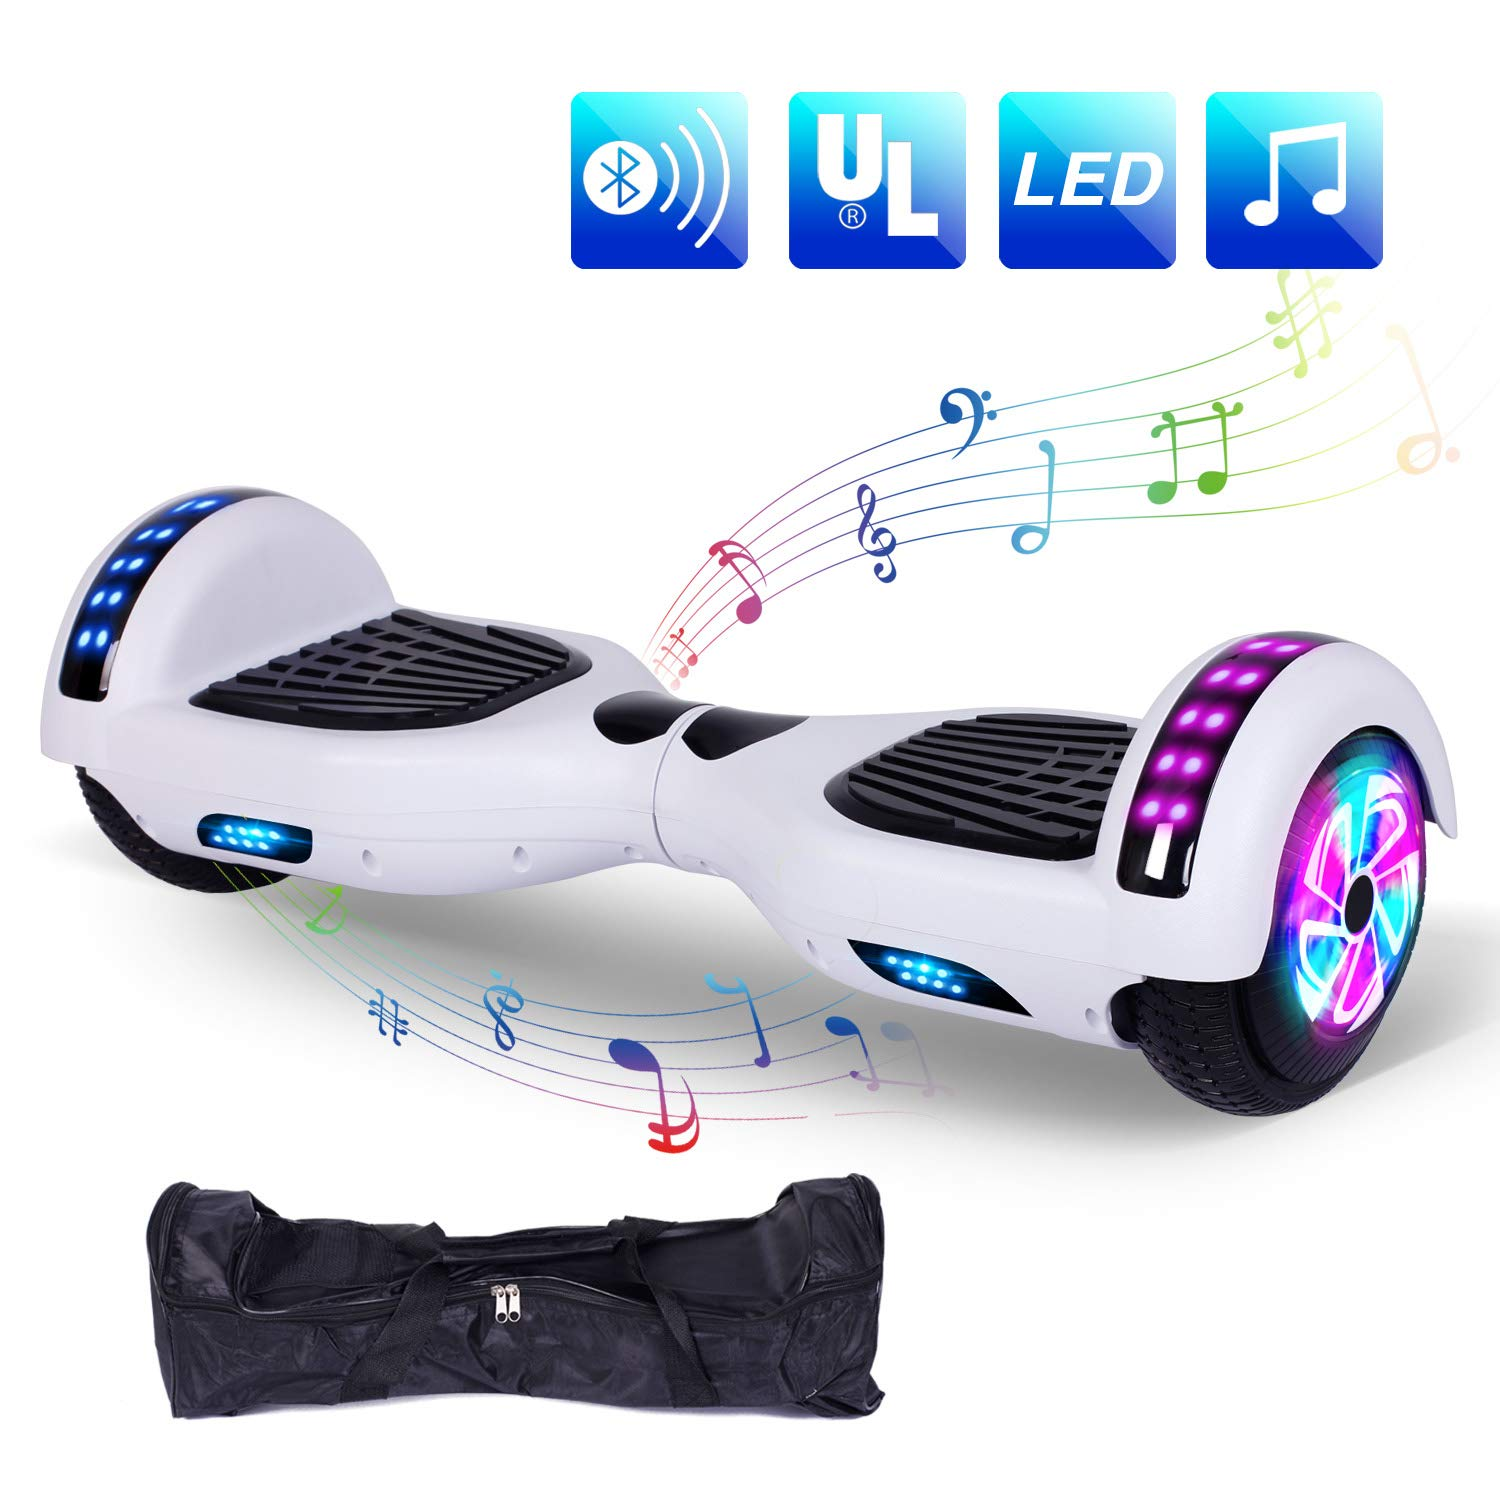 """YHR Hoverboard Self Balancing Scooter 6.5"""" Two Wheel Electric Scooter - UL Certified 2272 Bluetooth W/Speaker, LED Wheels and LED Lights"""